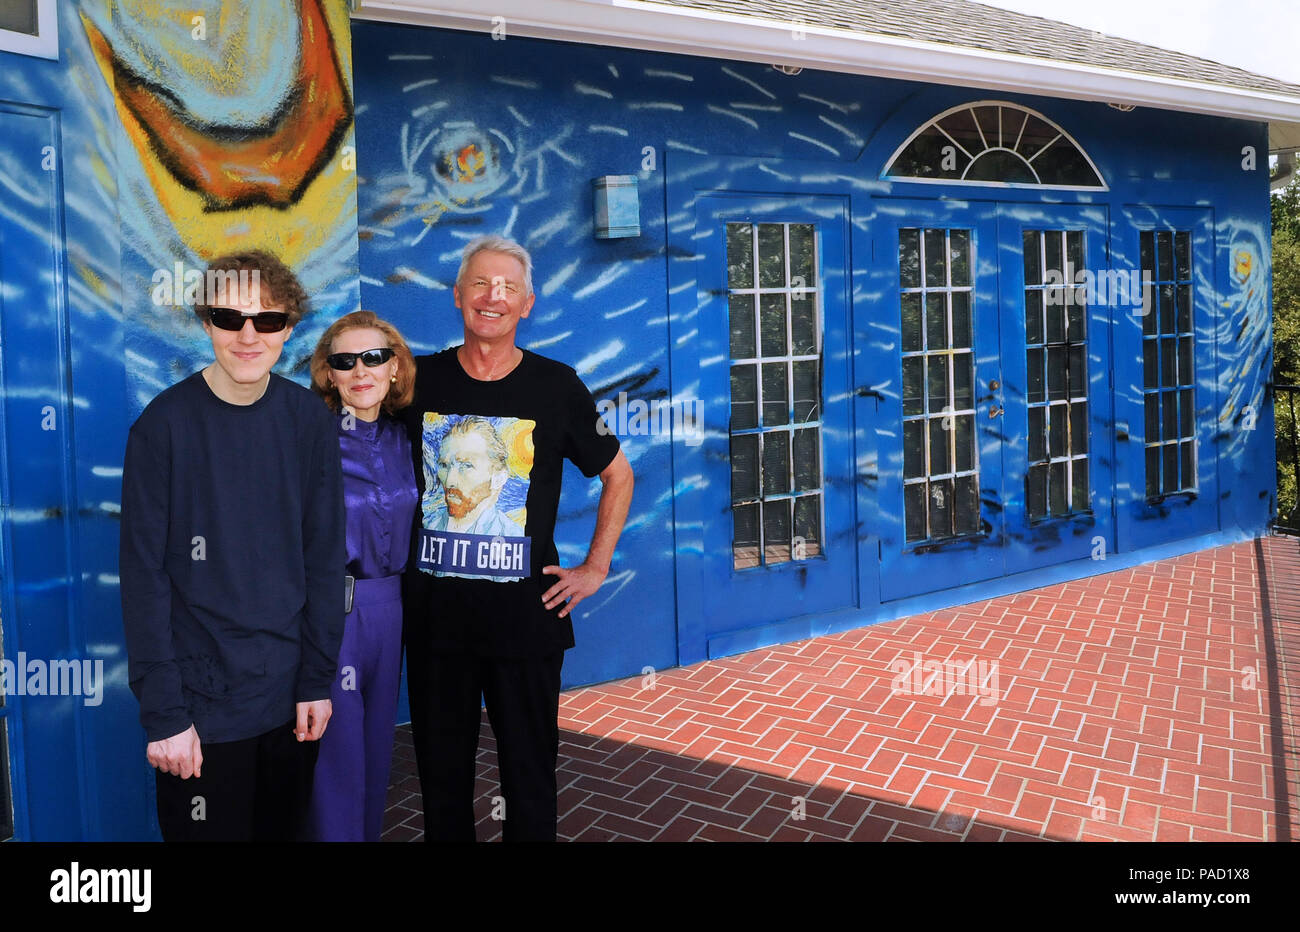 Florida, USA. 21 July 2018. Lubomir Jastrzebski (right), his wife, Nancy Nemhauser, and their son, Chip (left), pose in front of their mural-painted home on July 21, 2018 in Mount Dora, Florida. On July 17, 2018, the couple won a one year battle with the Mount Dora City Council to keep the van Gogh inspired art work on their wall and home. The code enforcement dispute began when the homeowners hired an artist to paint a wall outside their home in the likeness of van Gogh's painting 'The Starry Night' as a means to calm their 25 year-old son who is autistic and loves va - Stock Image